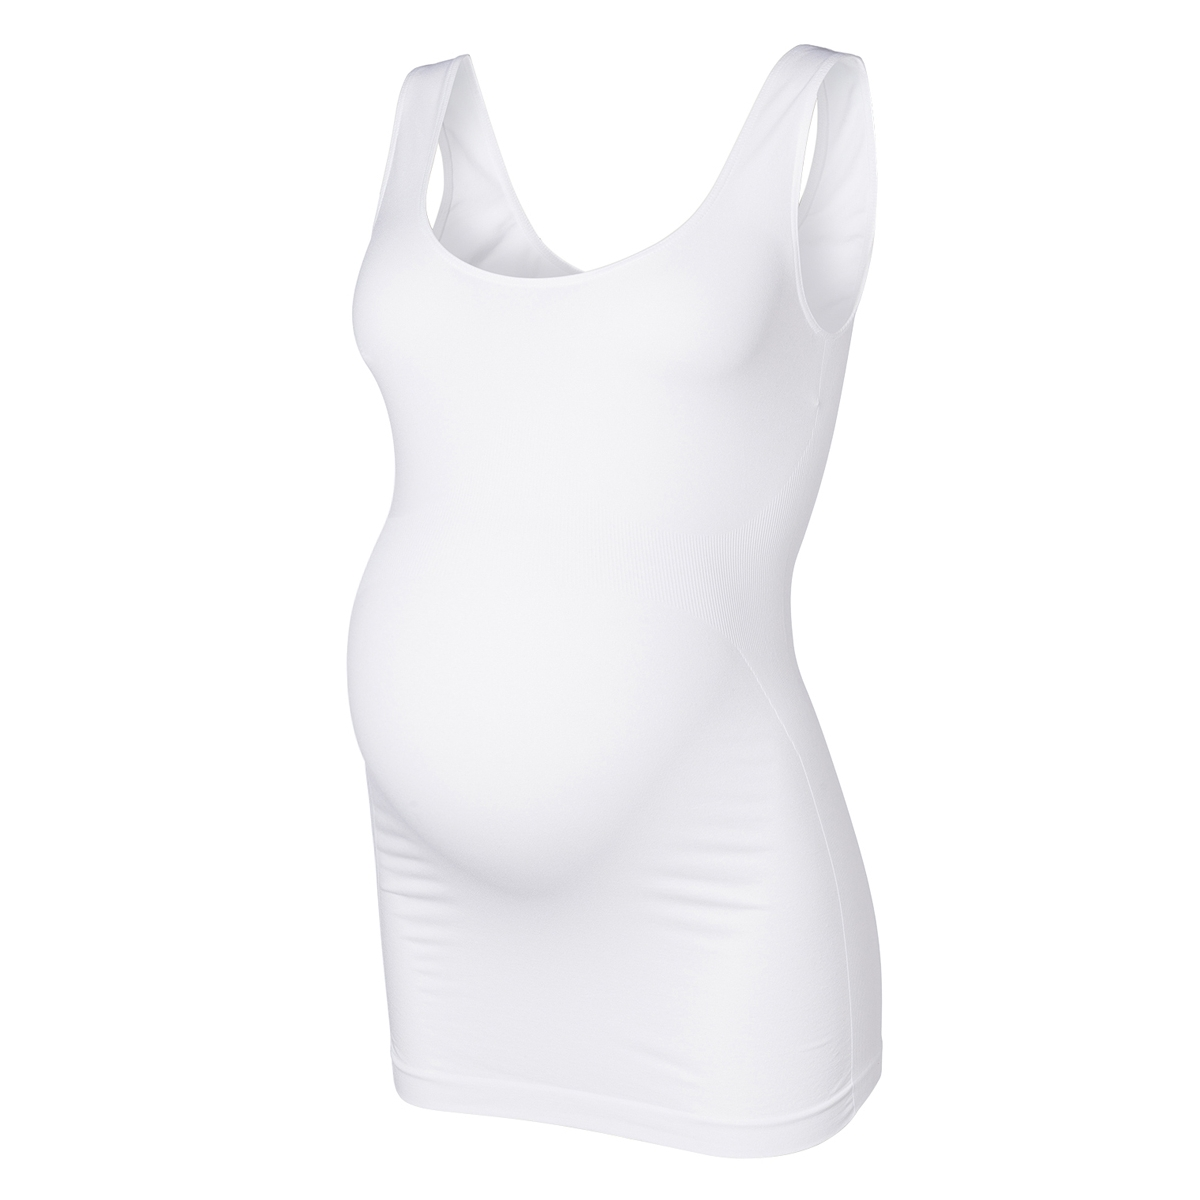 new heal tank top 20001421 mama-licious positie shirt optical white